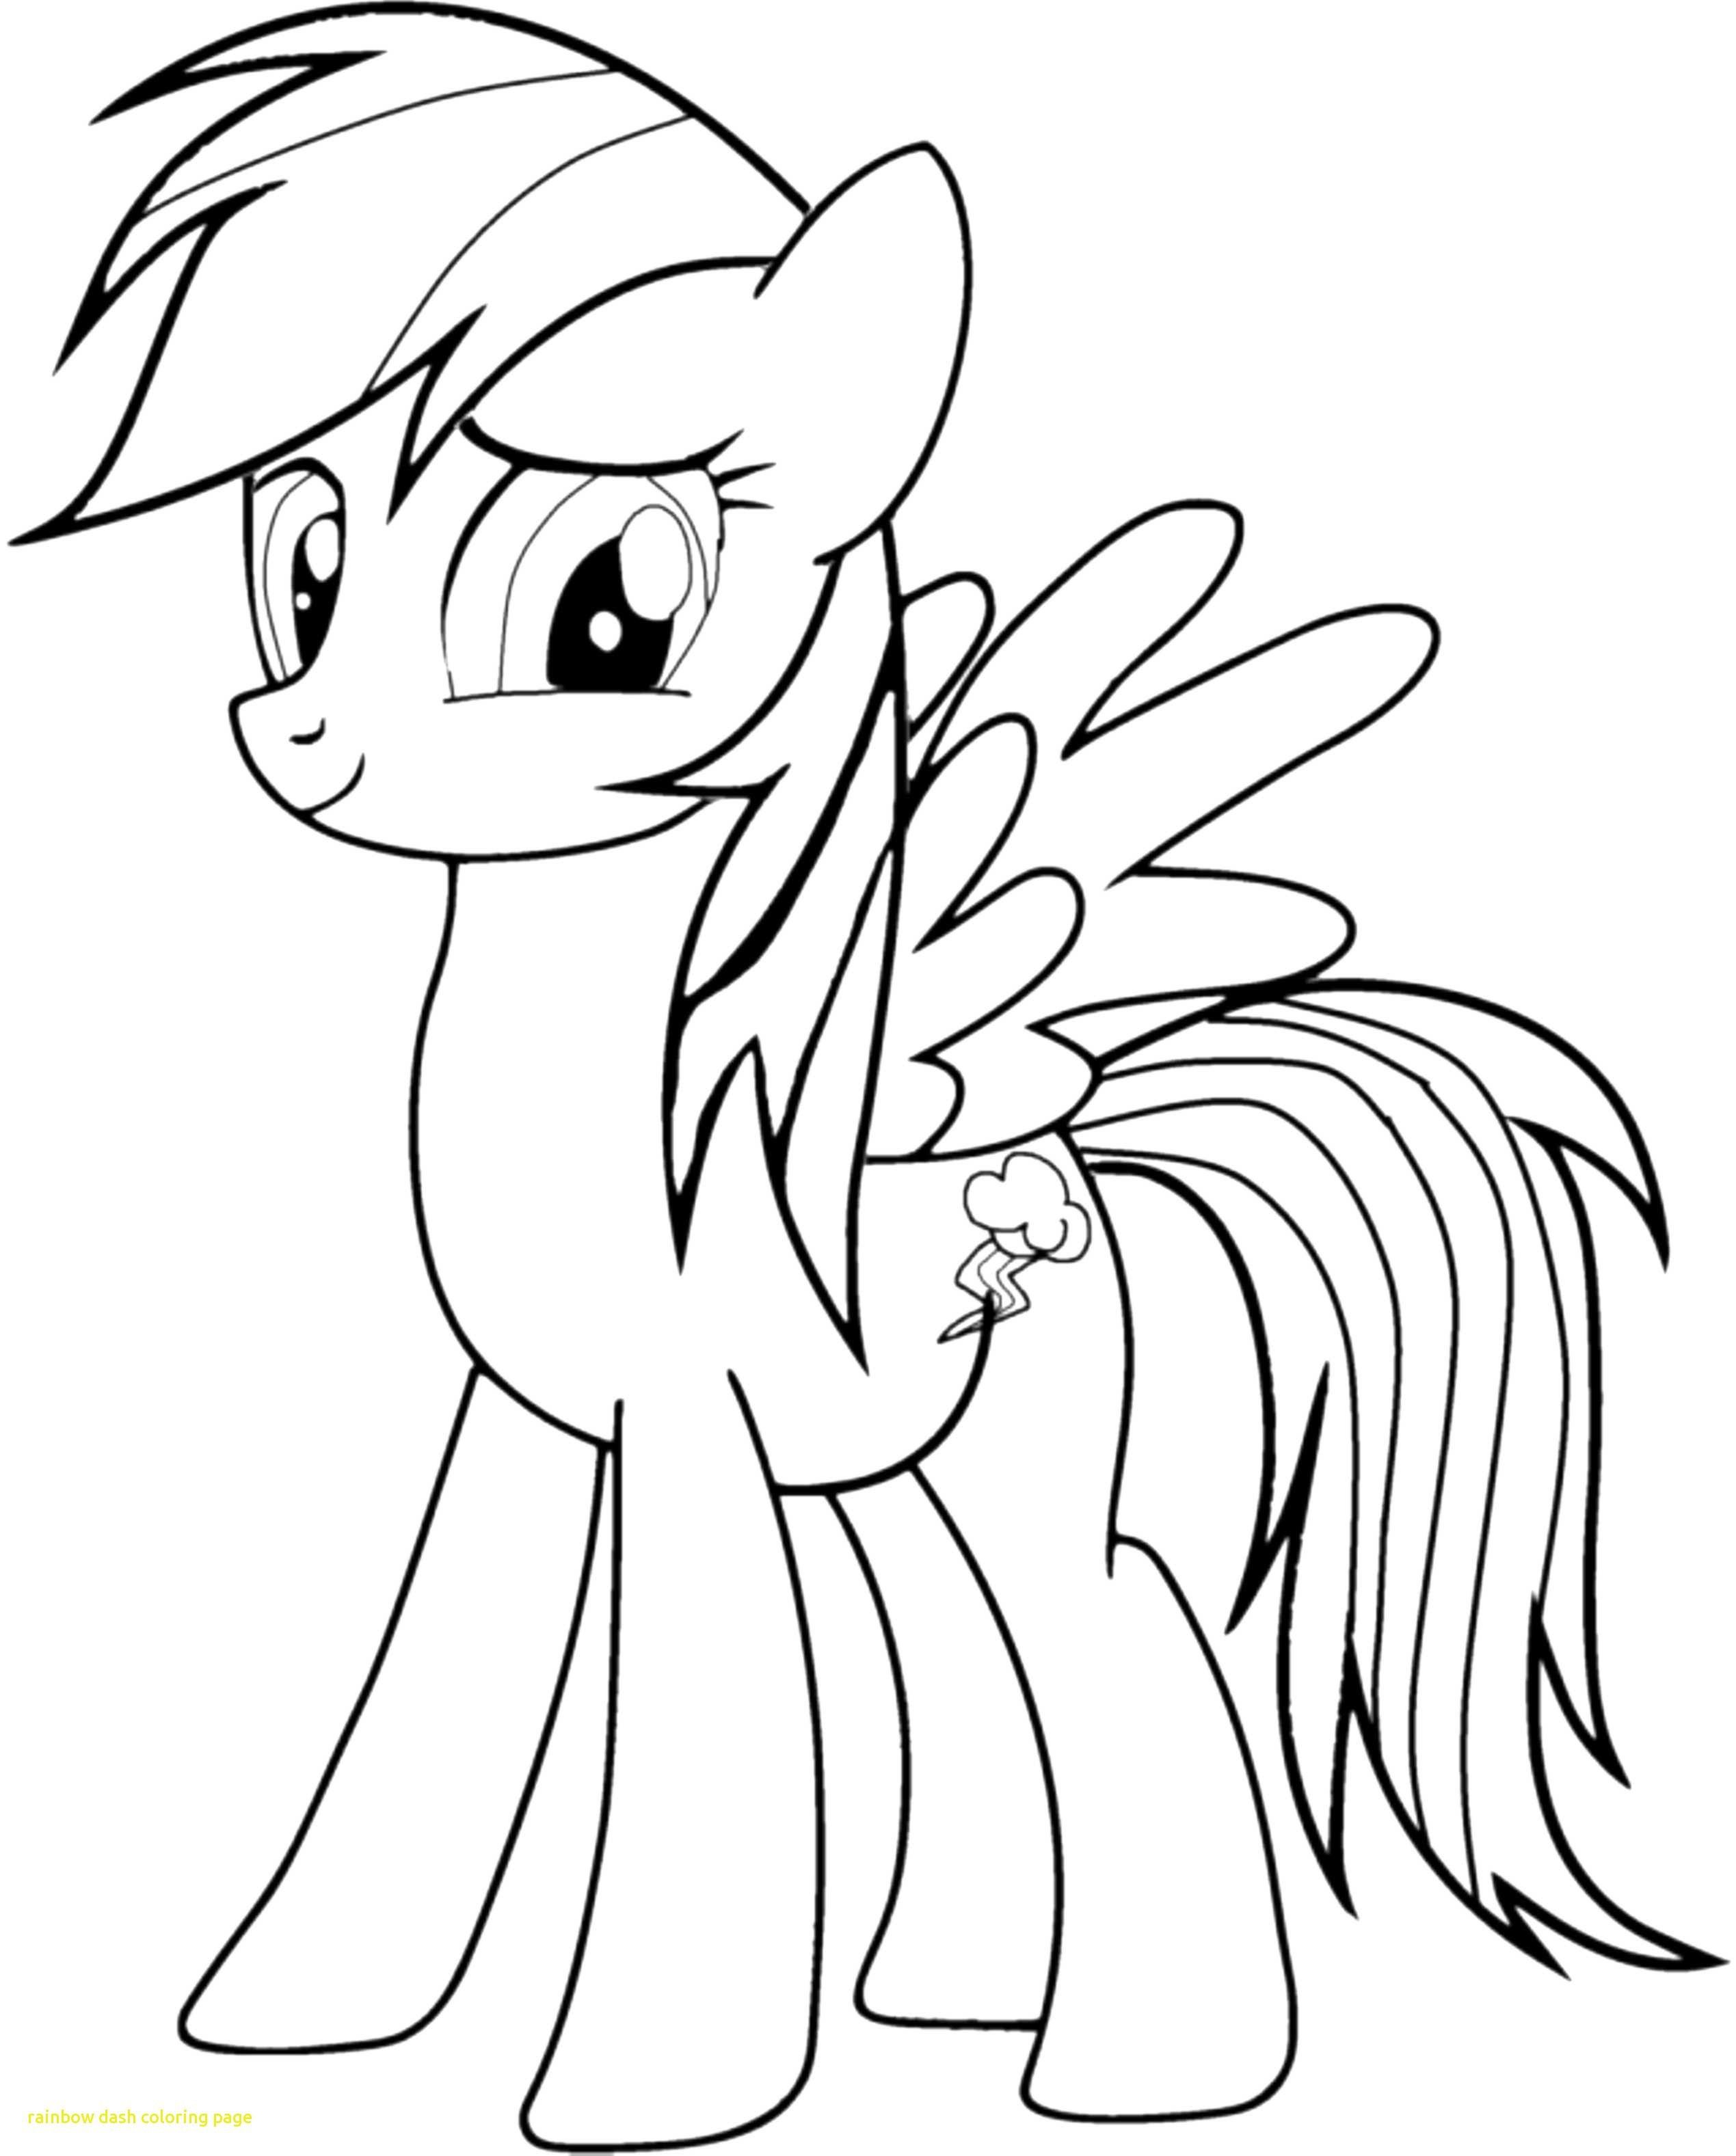 my little pony coloring pages rainbow dash My Little Pony Coloring Pages Rainbow Dash – Through the thousands  my little pony coloring pages rainbow dash